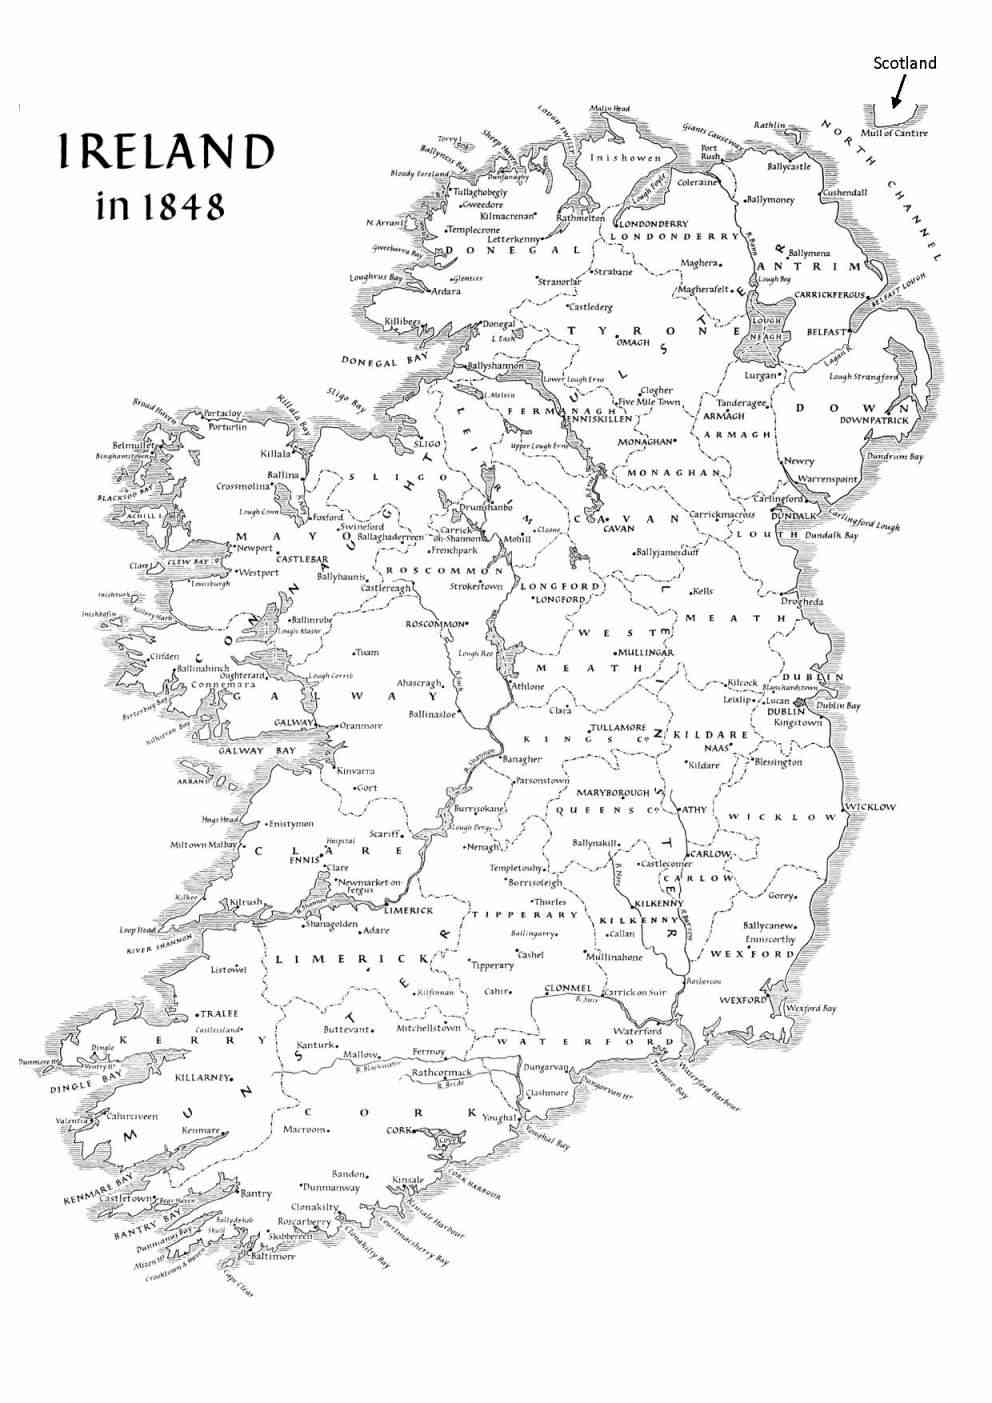 Map Of Ireland Kerry Region.Ireland Geography Basic Facts About The Island